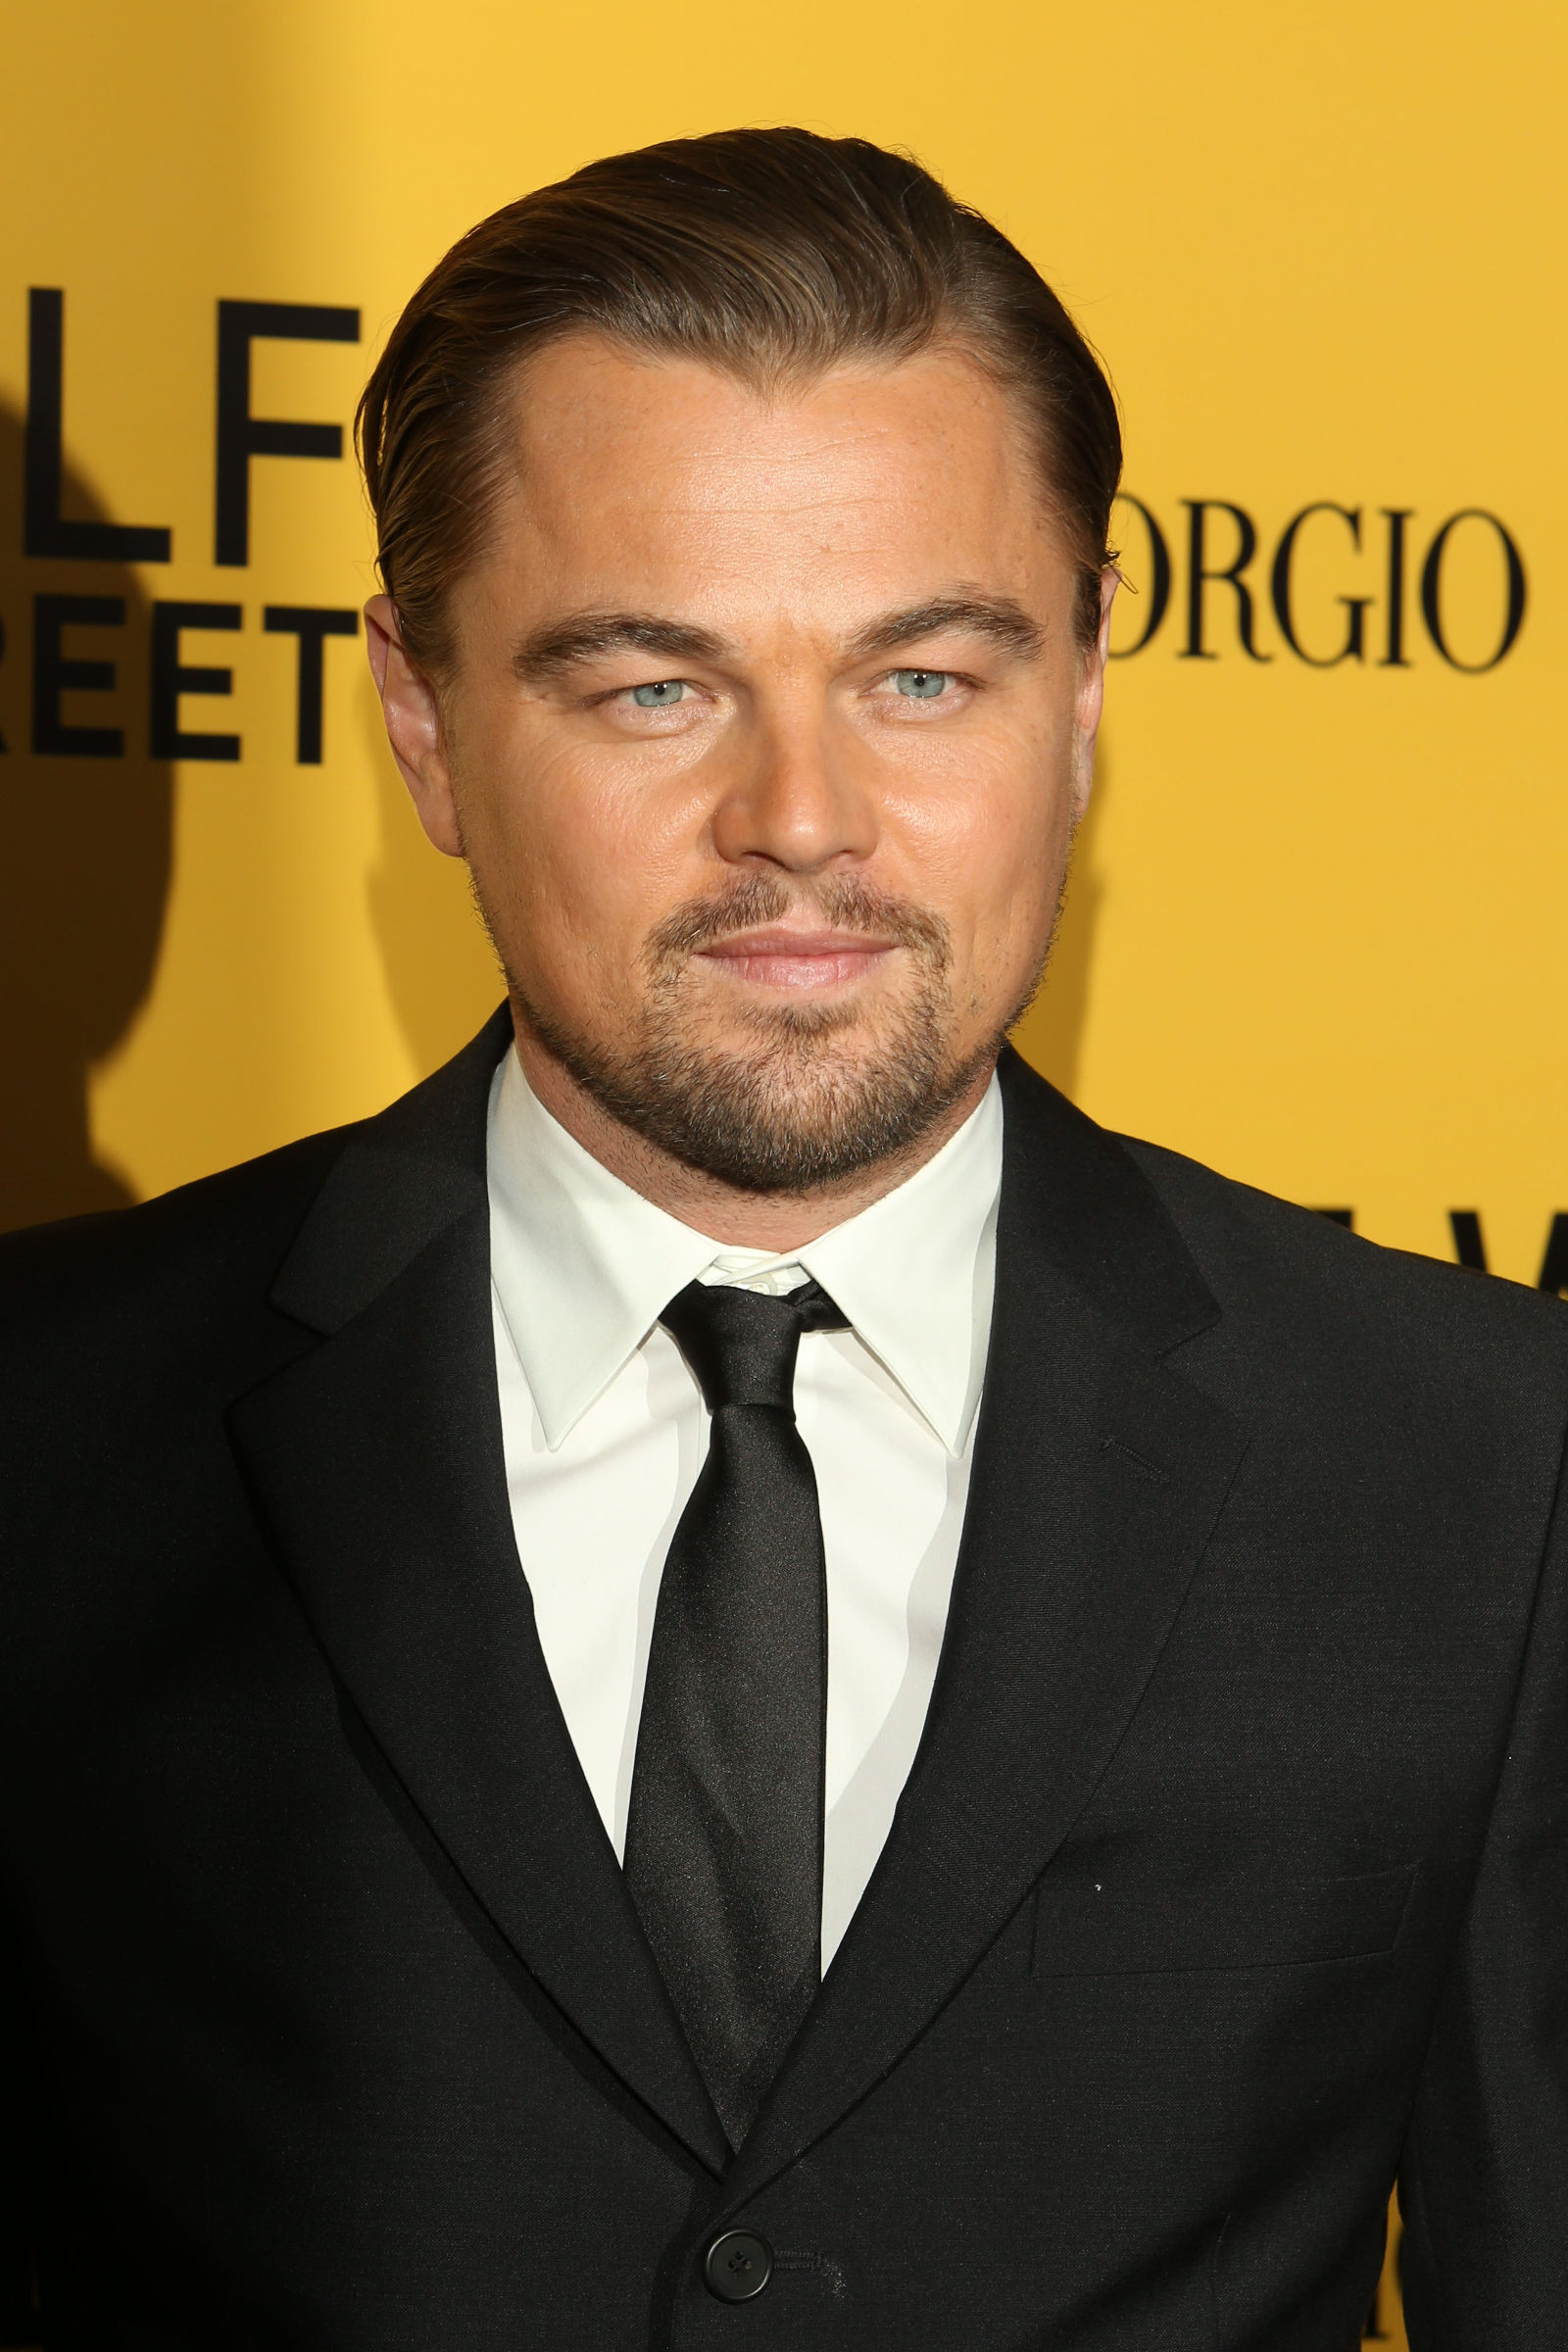 Leonardo DiCaprio   Windowu0027s Peak   Slicked Back